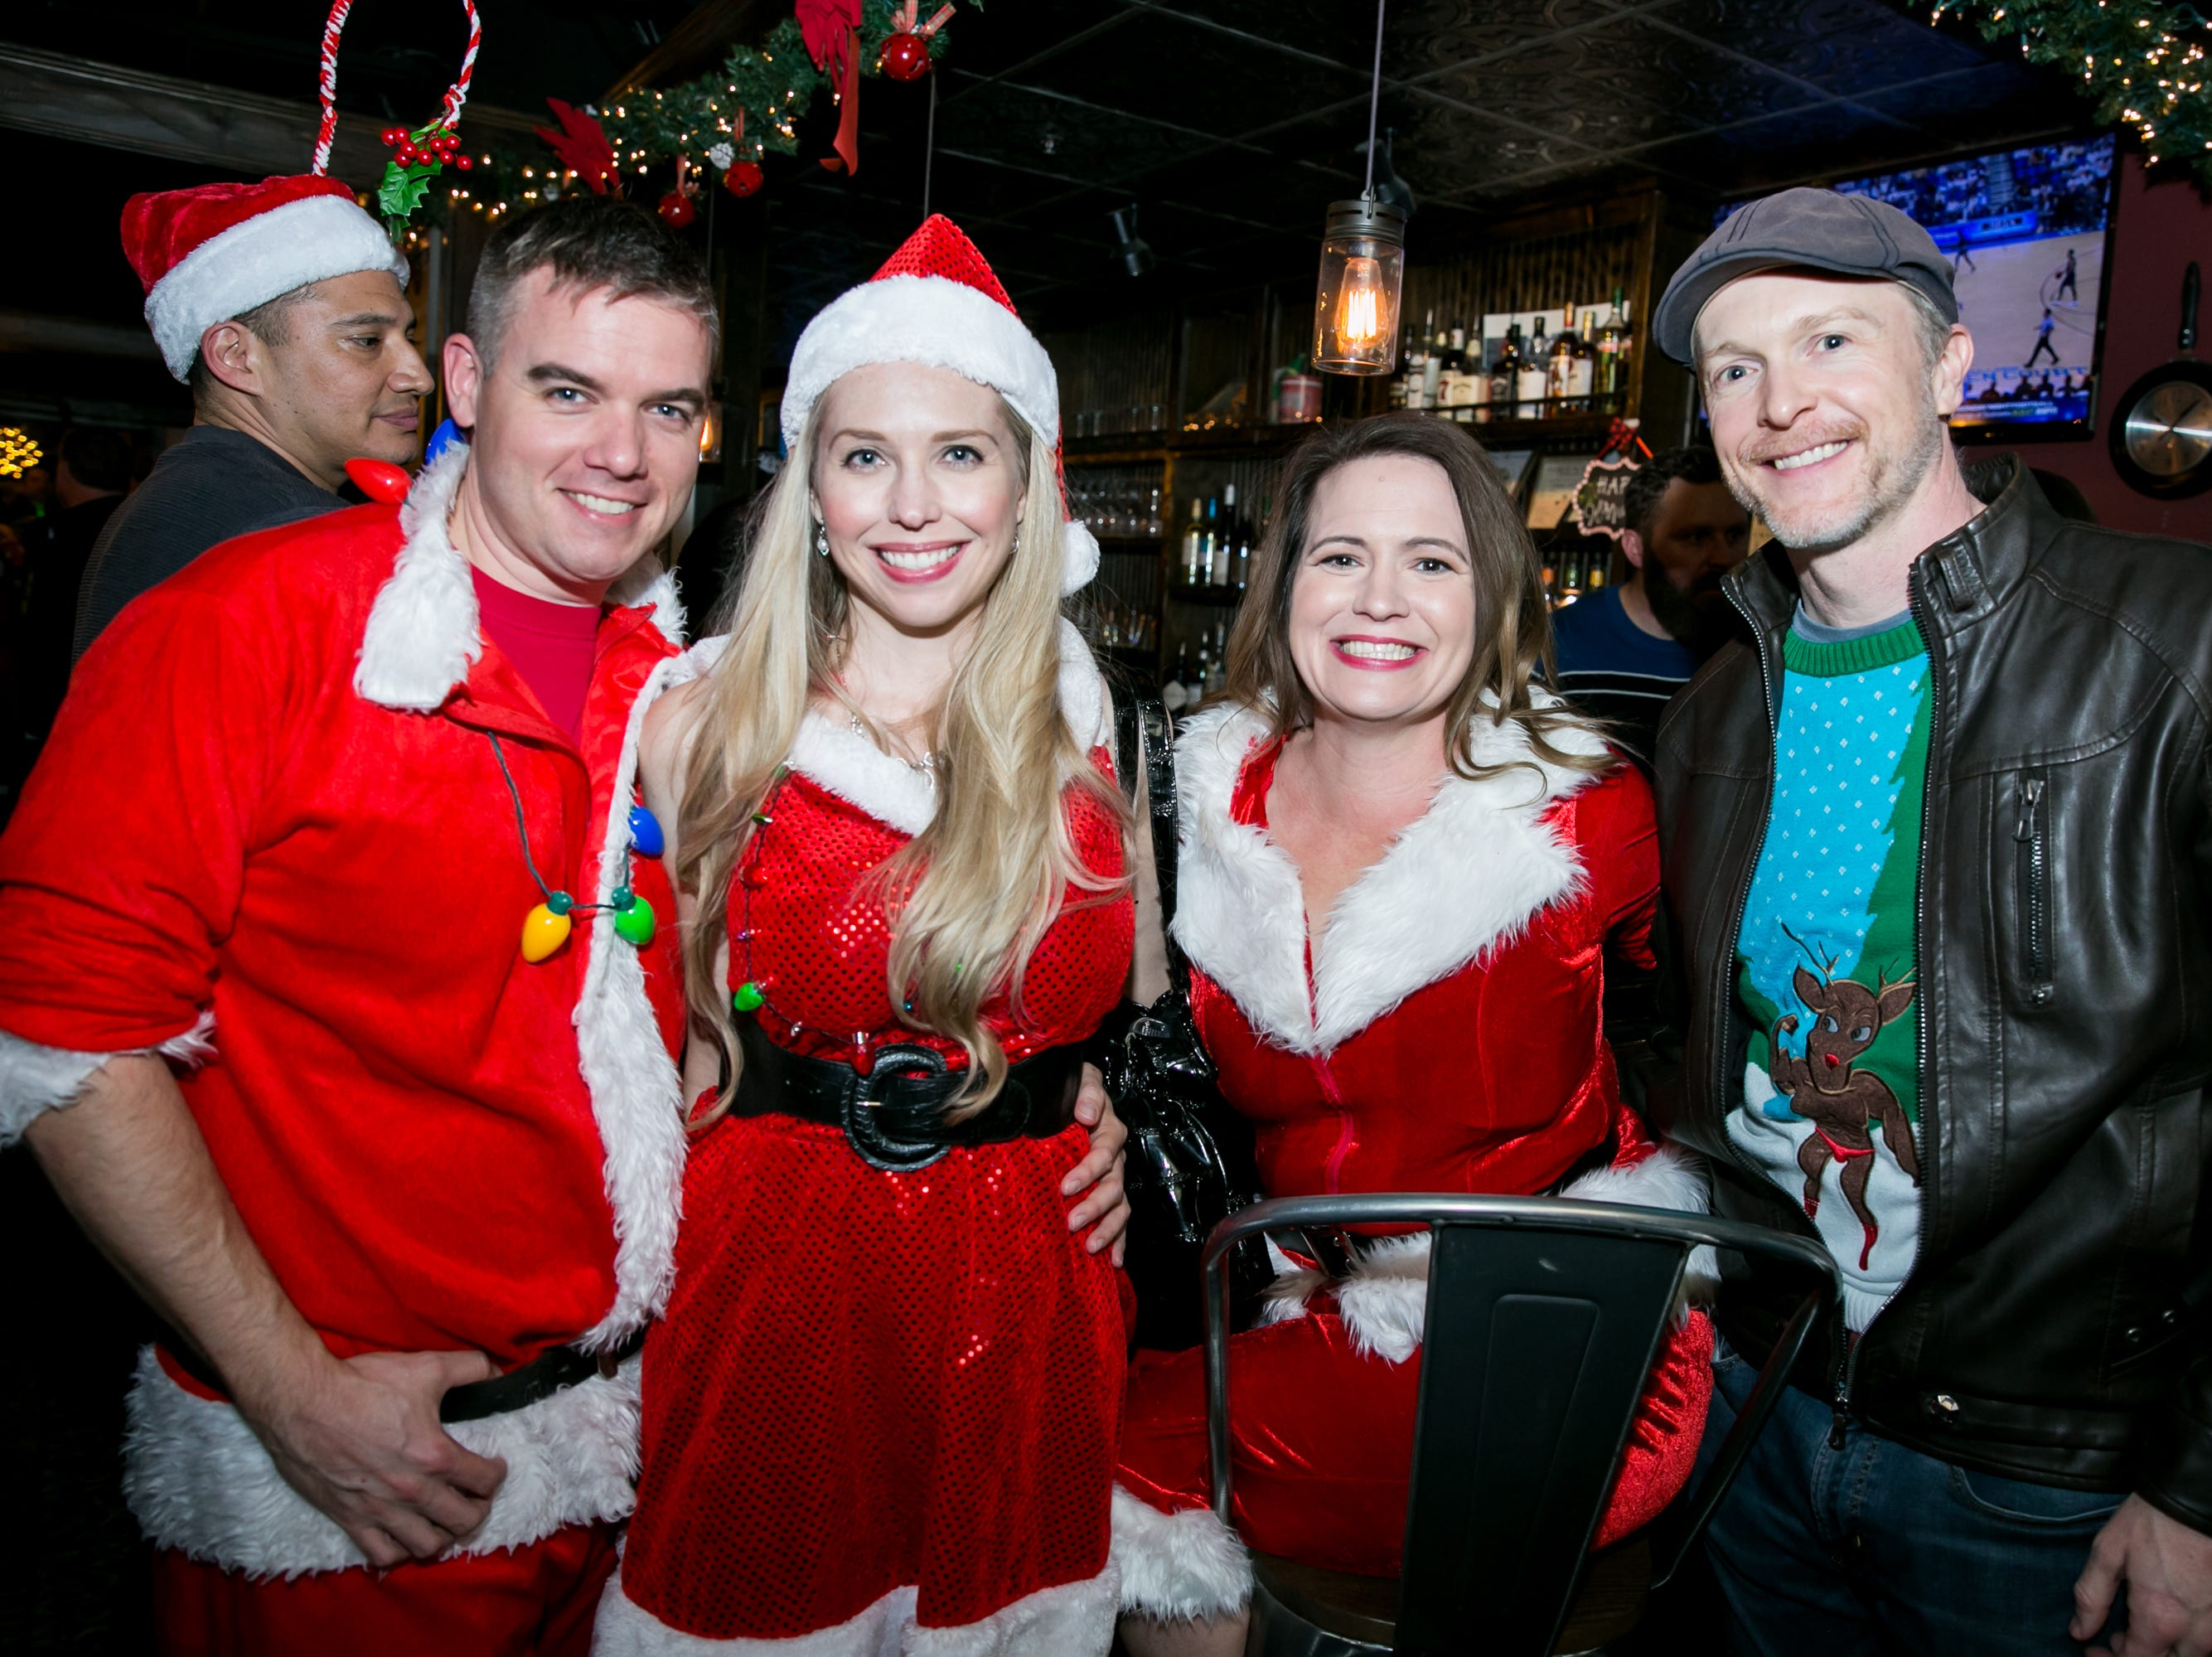 This group had a blast at The Kettle Black during Santarchy on Saturday, December 8, 2018.